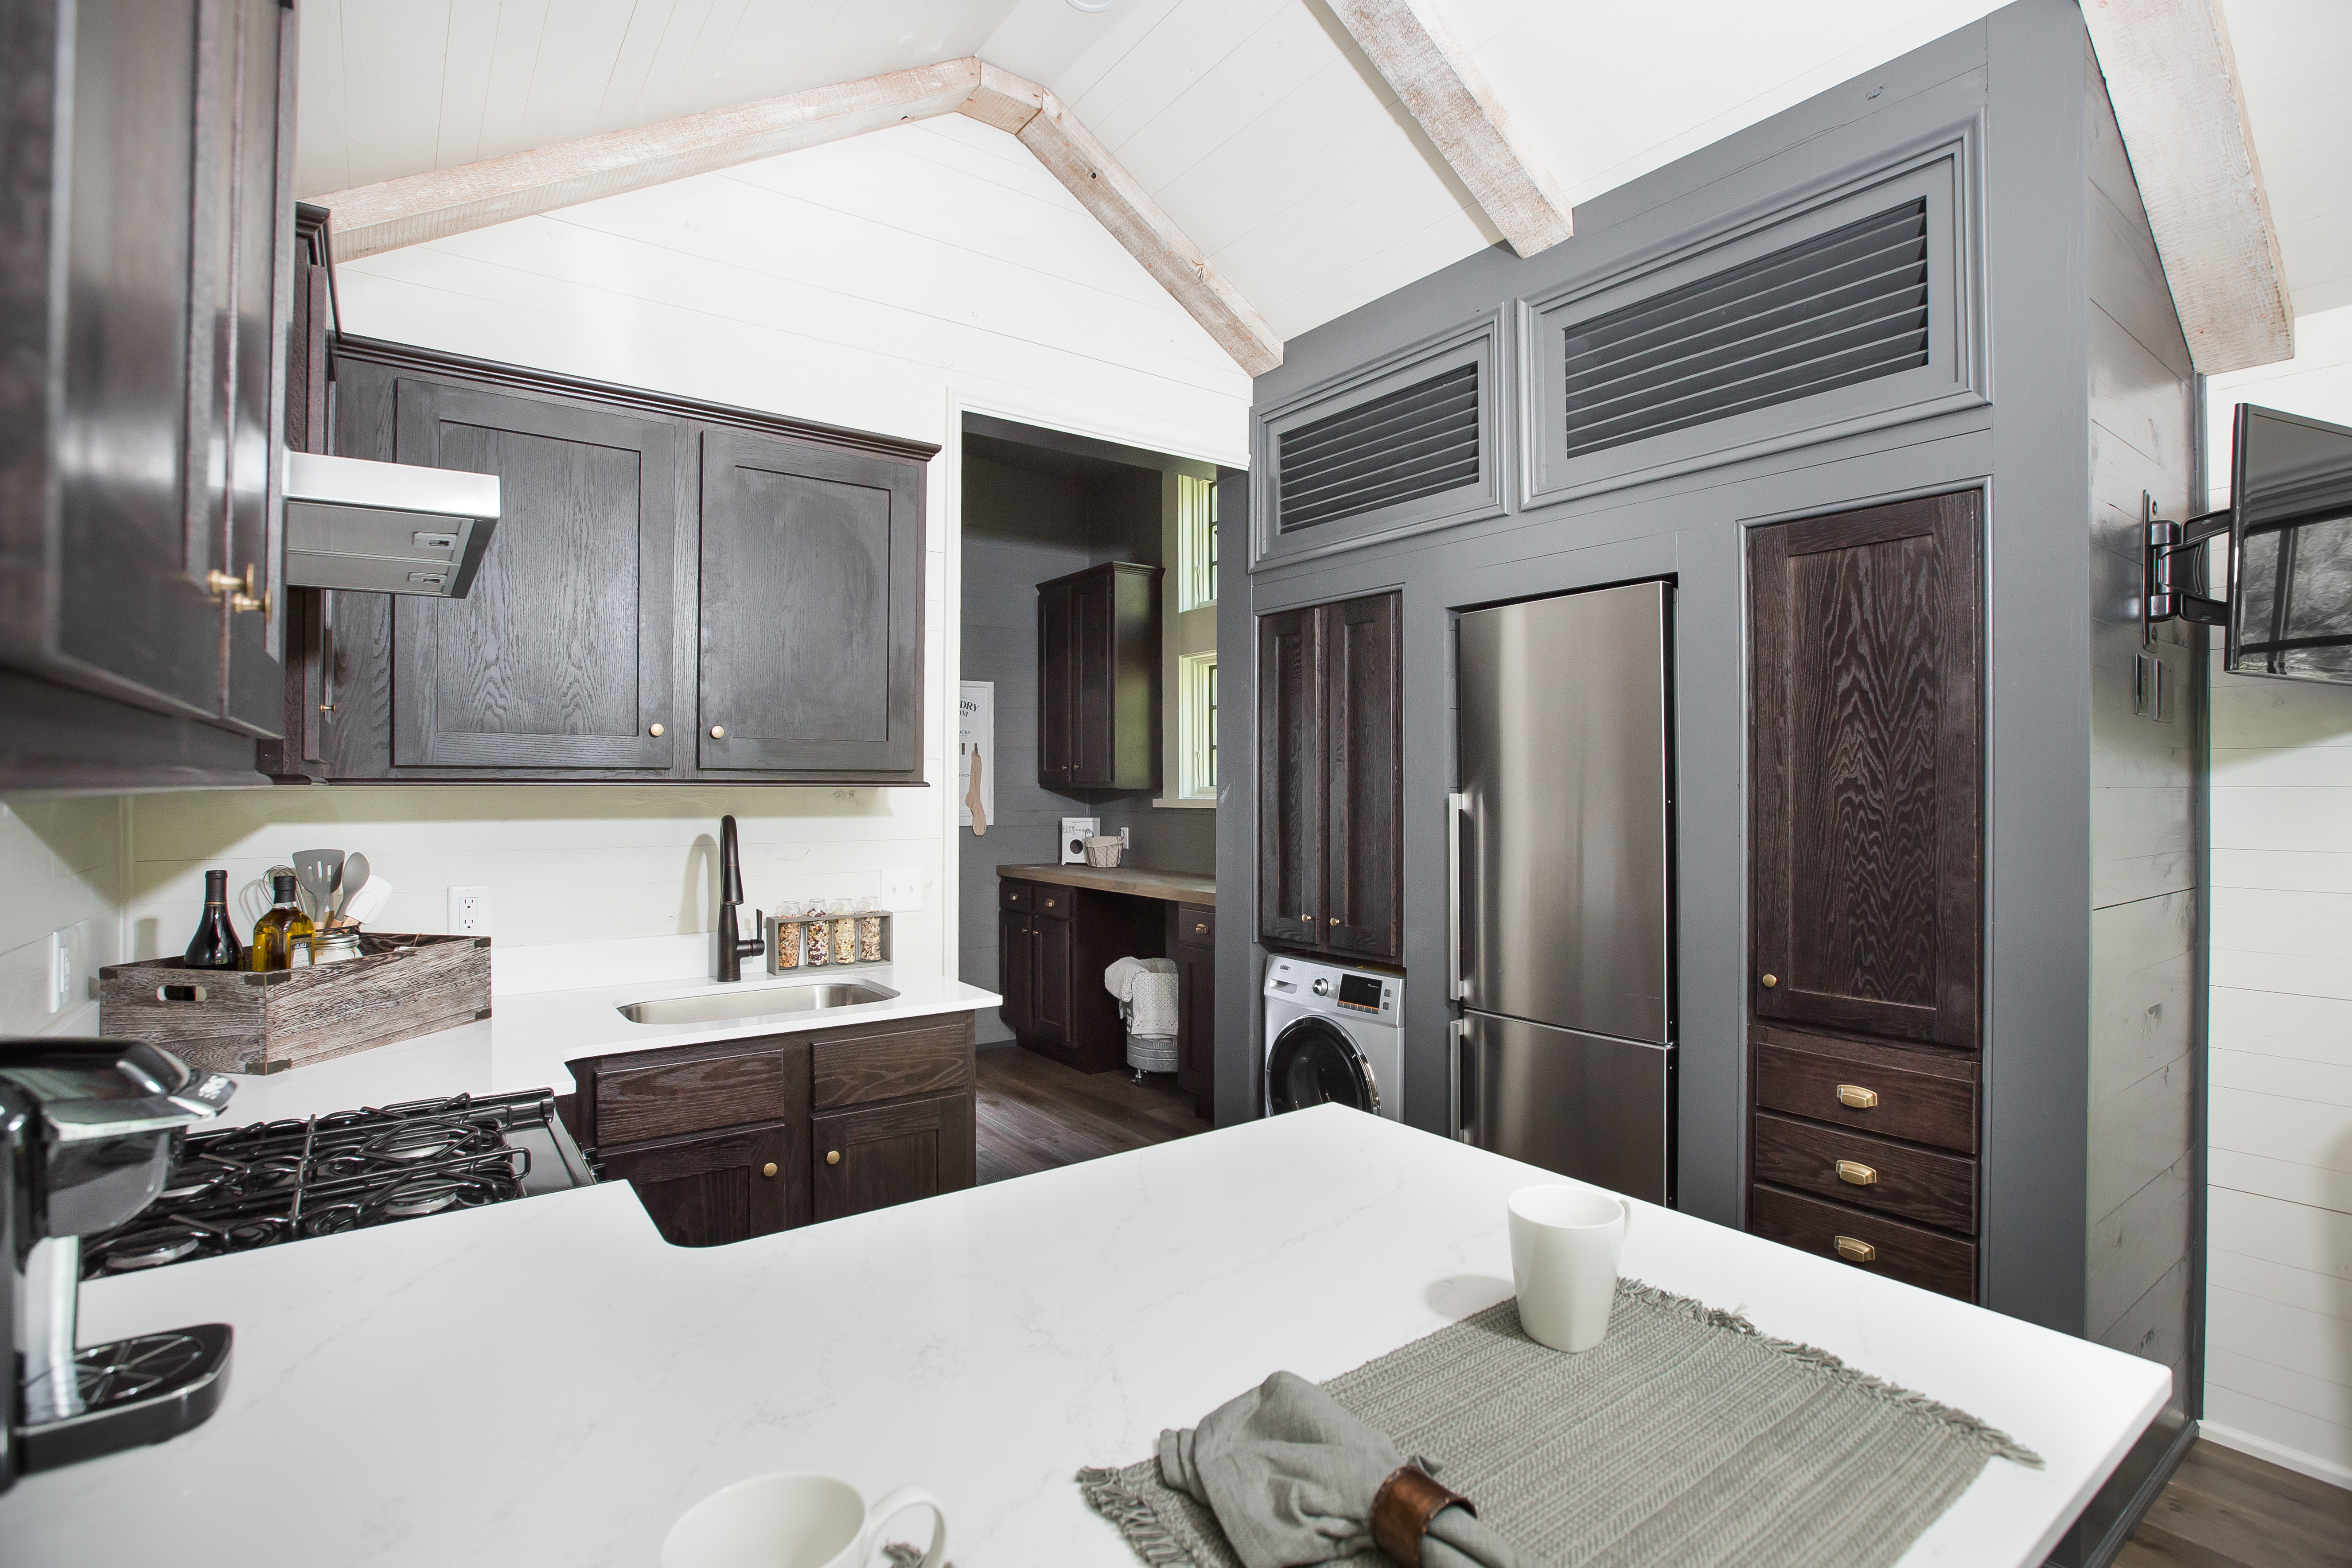 Tiny Home Designs: The State Of Tiny Homes